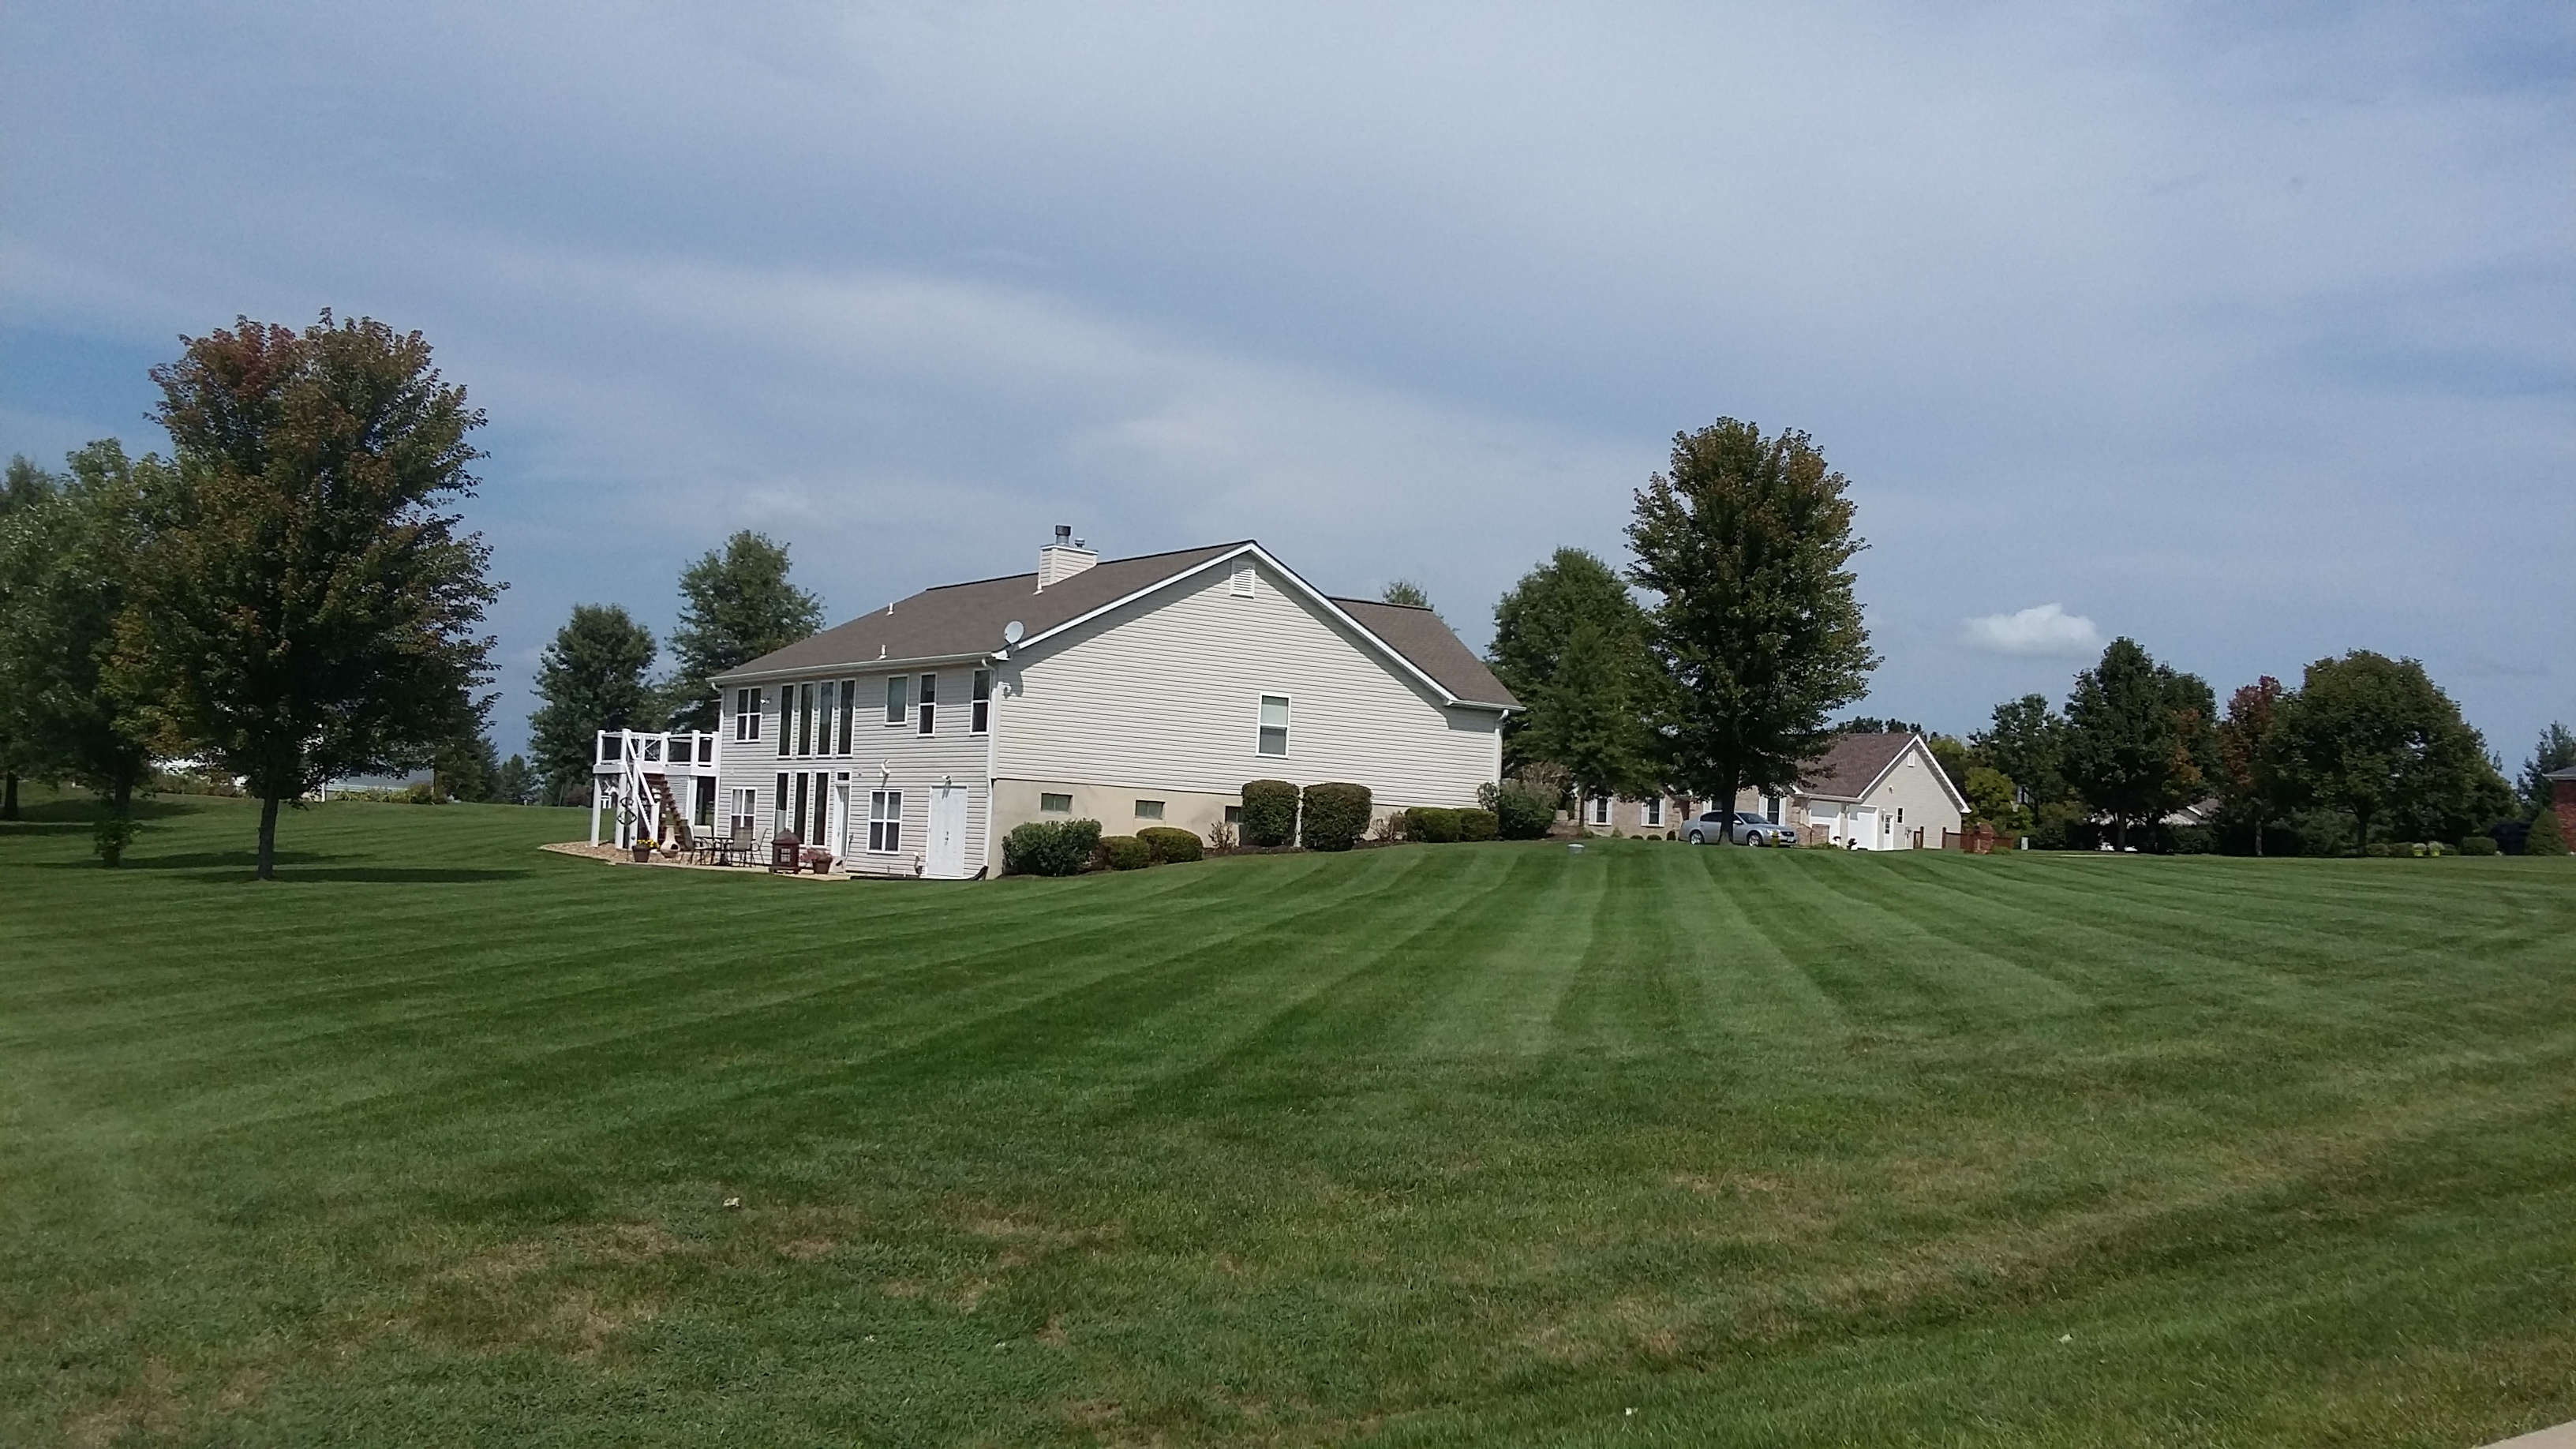 Lawn Mowing Contractor in Pevely, MO, 63040